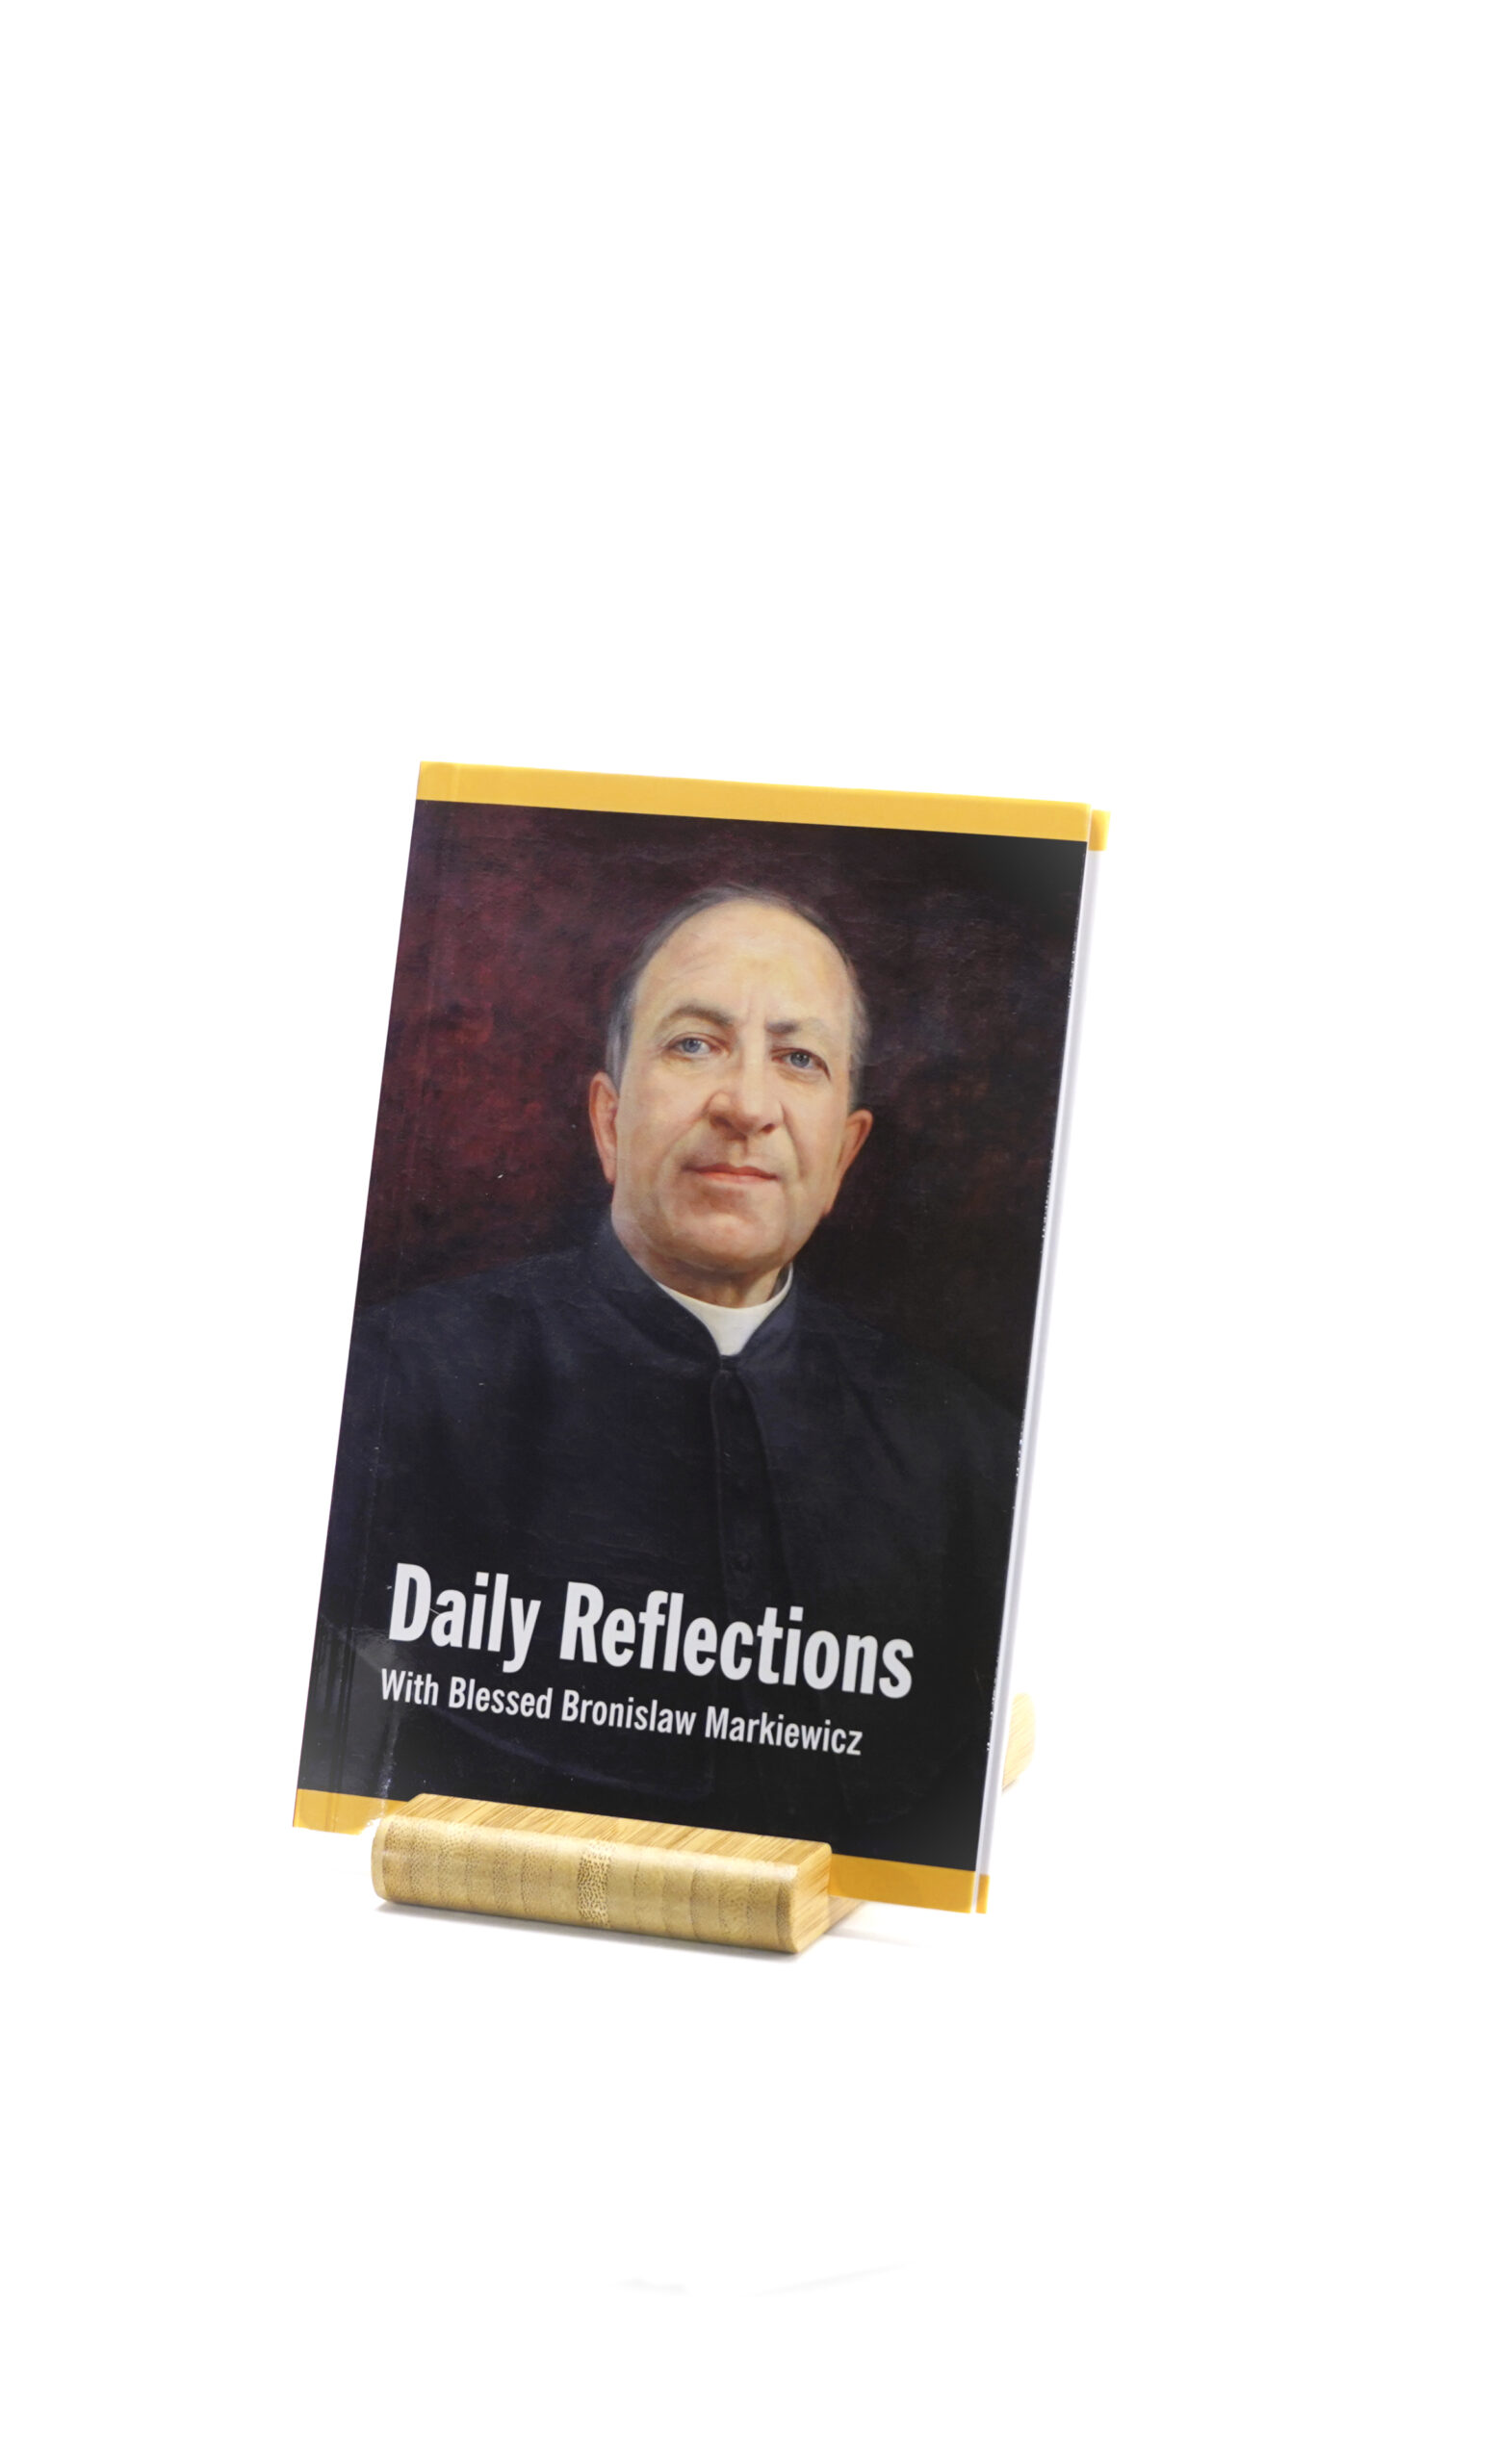 Daily Reflections with Blessed Bronislaw Markiewicz